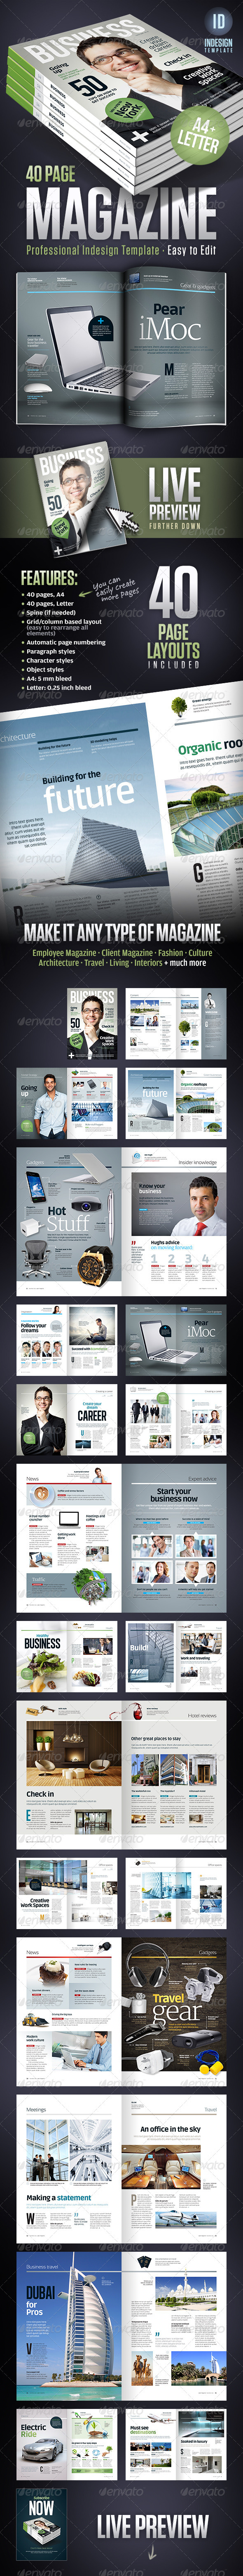 Business Magazine Template A4 + Letter - 40 pages - Magazines Print Templates